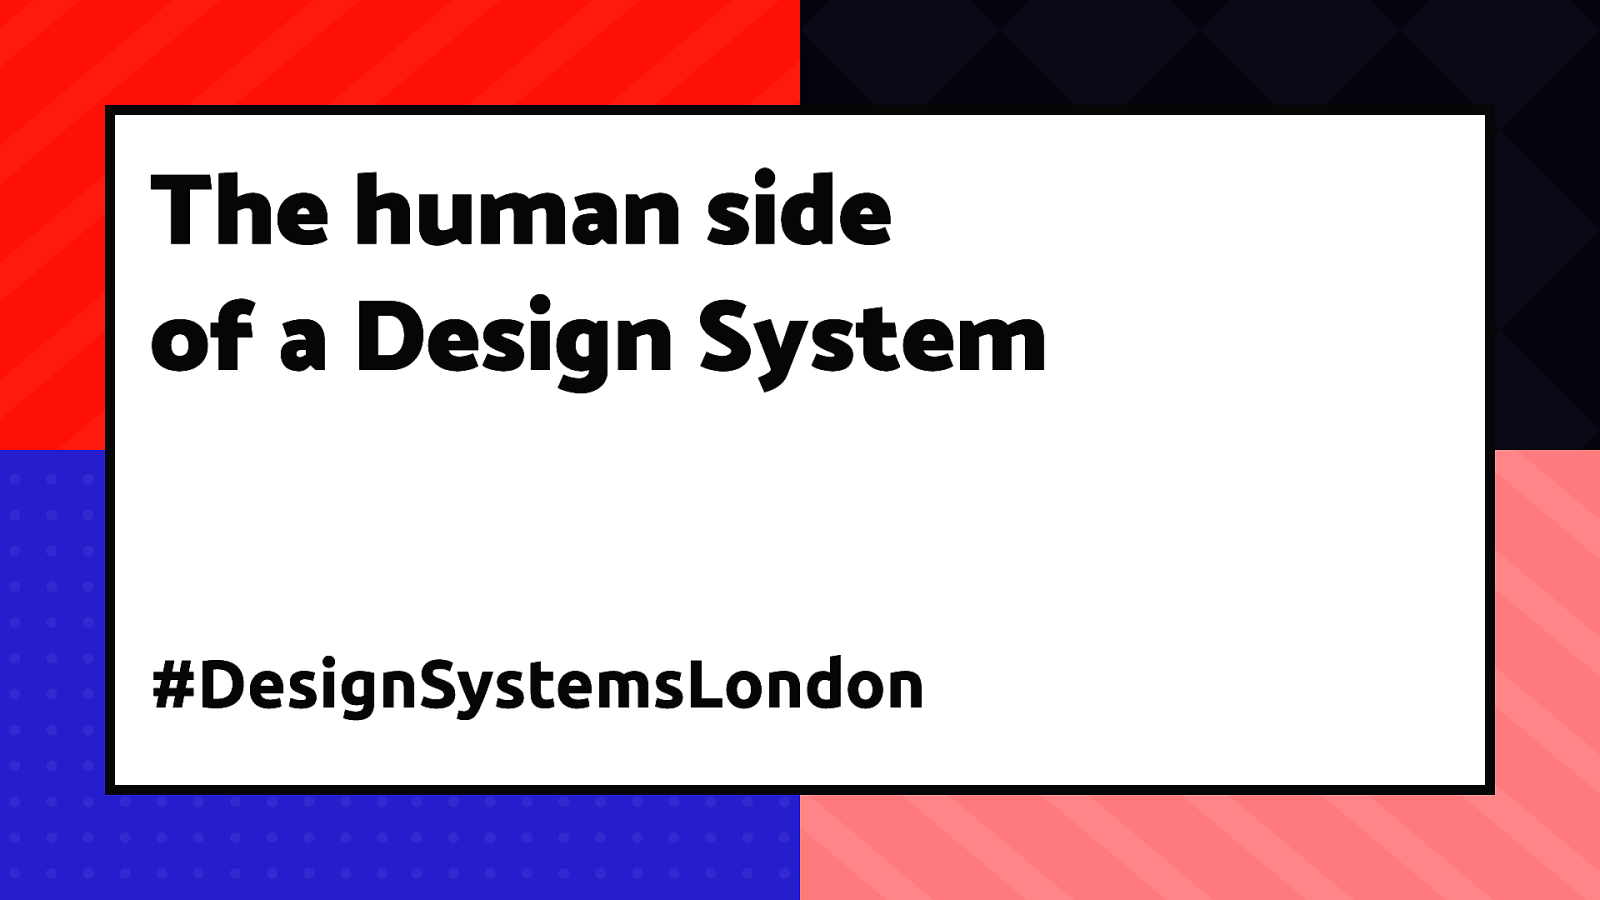 The human side of a Design System